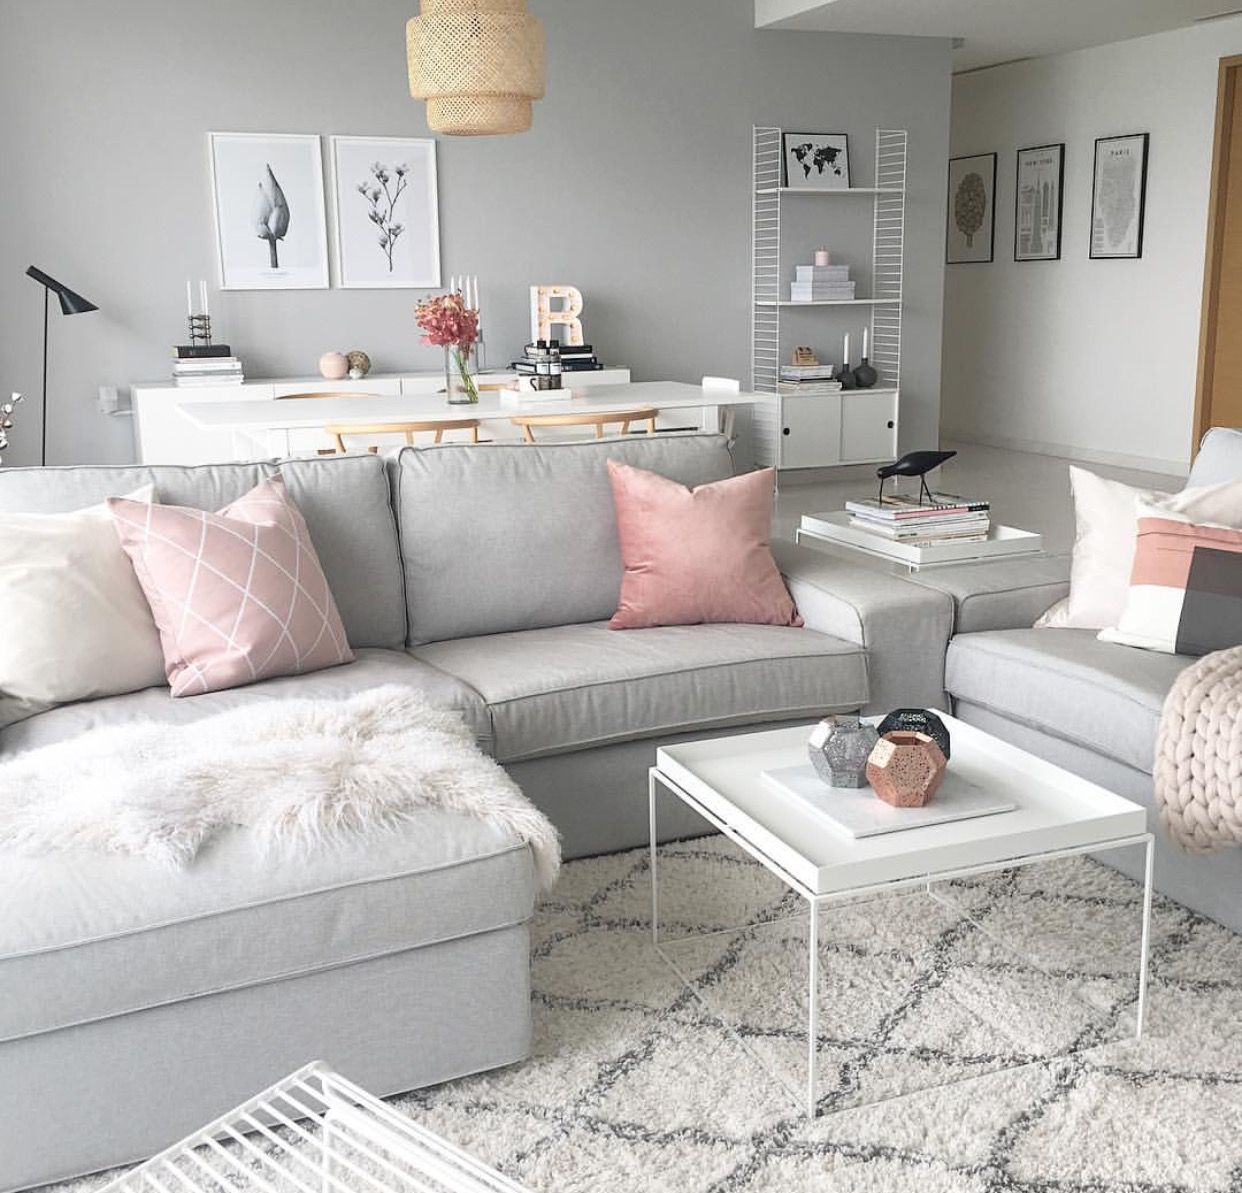 New Home Decorating Ideas (With Images)